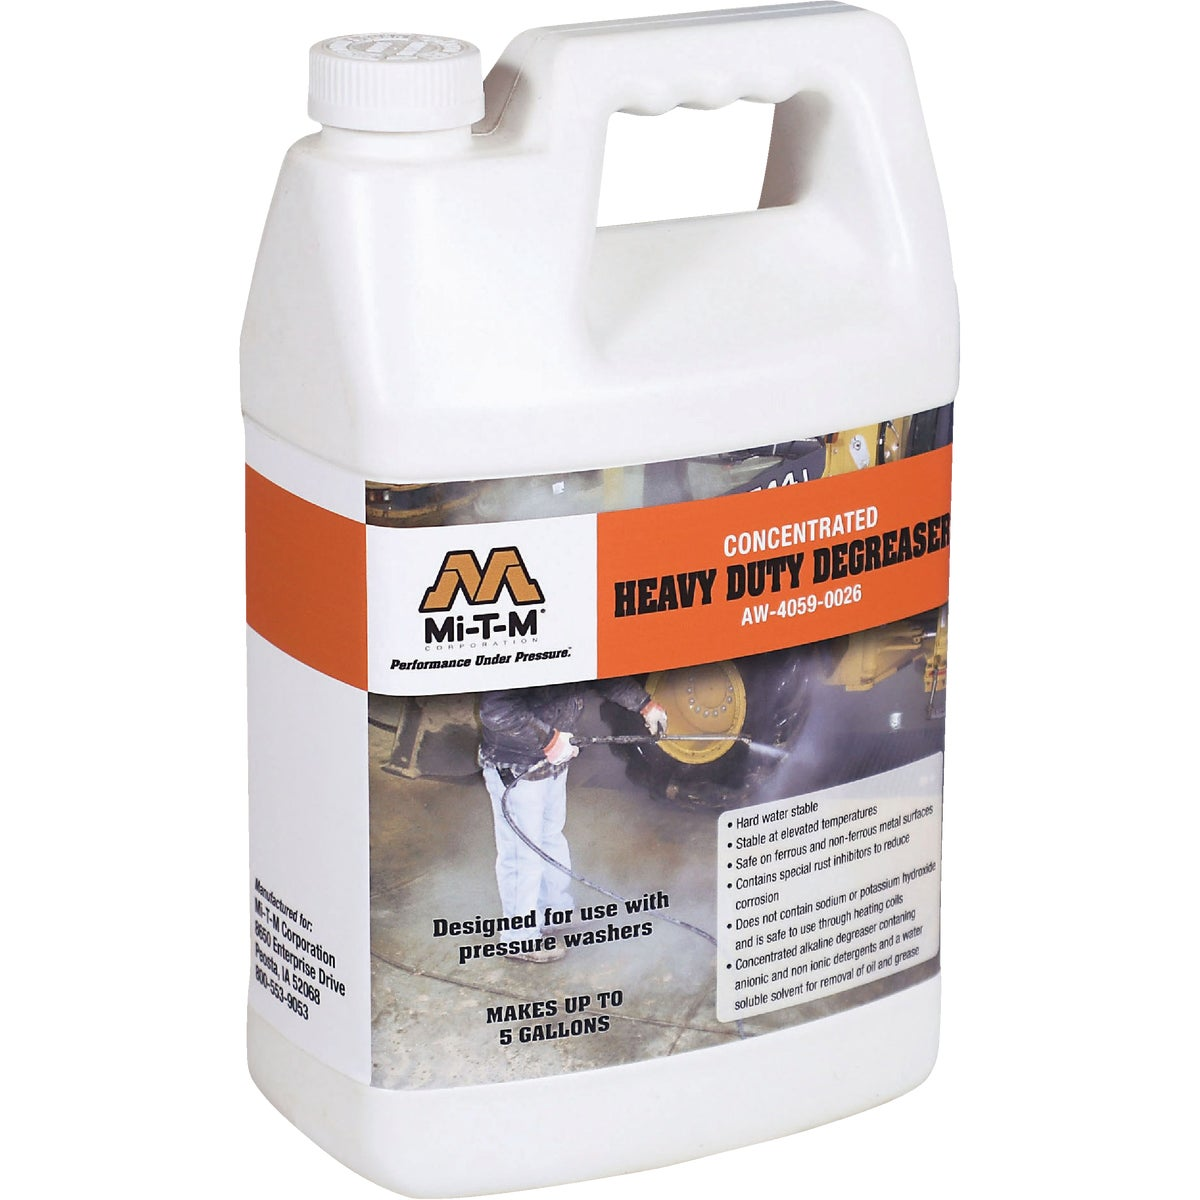 Gal H/Duty Degreaser